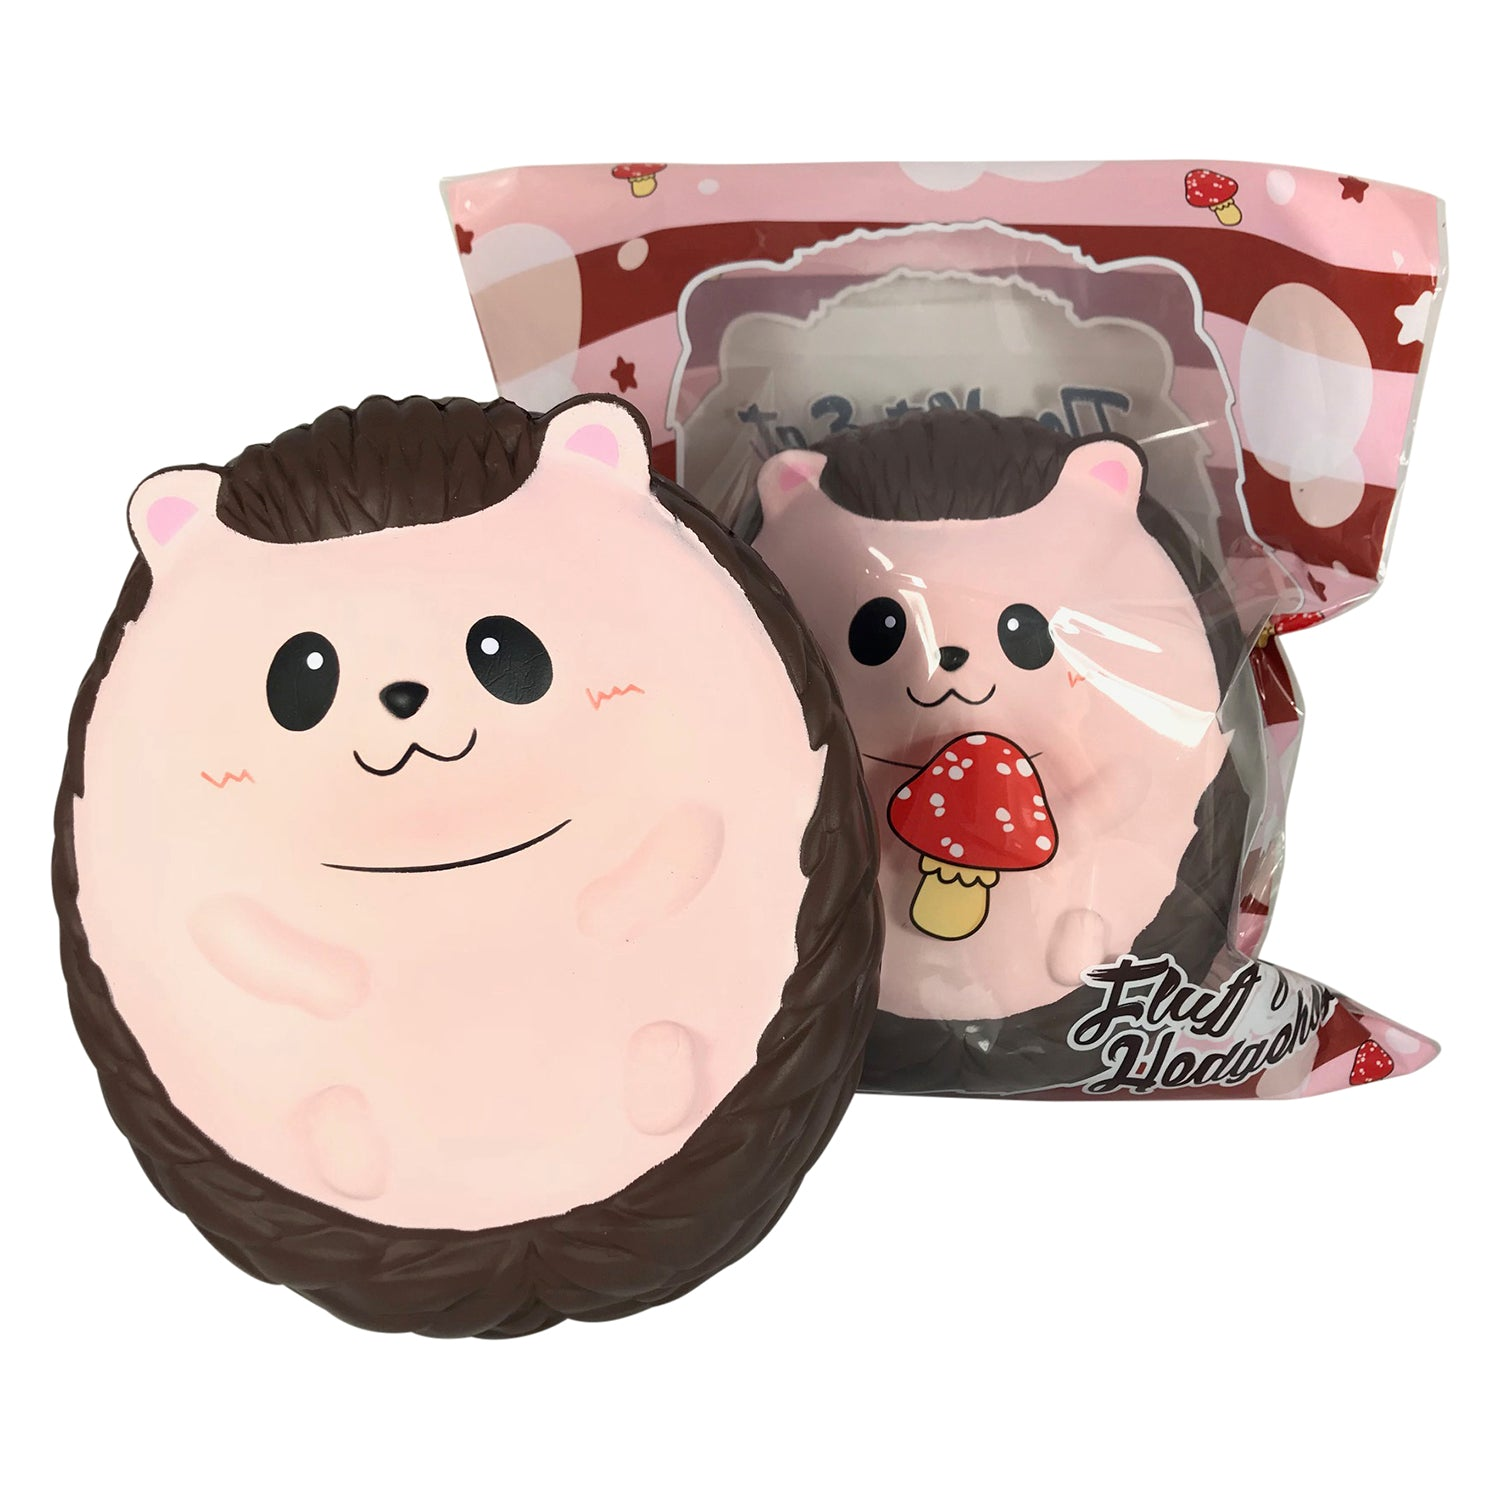 HUGE, BIG, JUMBO Cutie Creative SCENTED Fluff Fluff the Hedgehog! EXCLUSIVE, LIMITED!